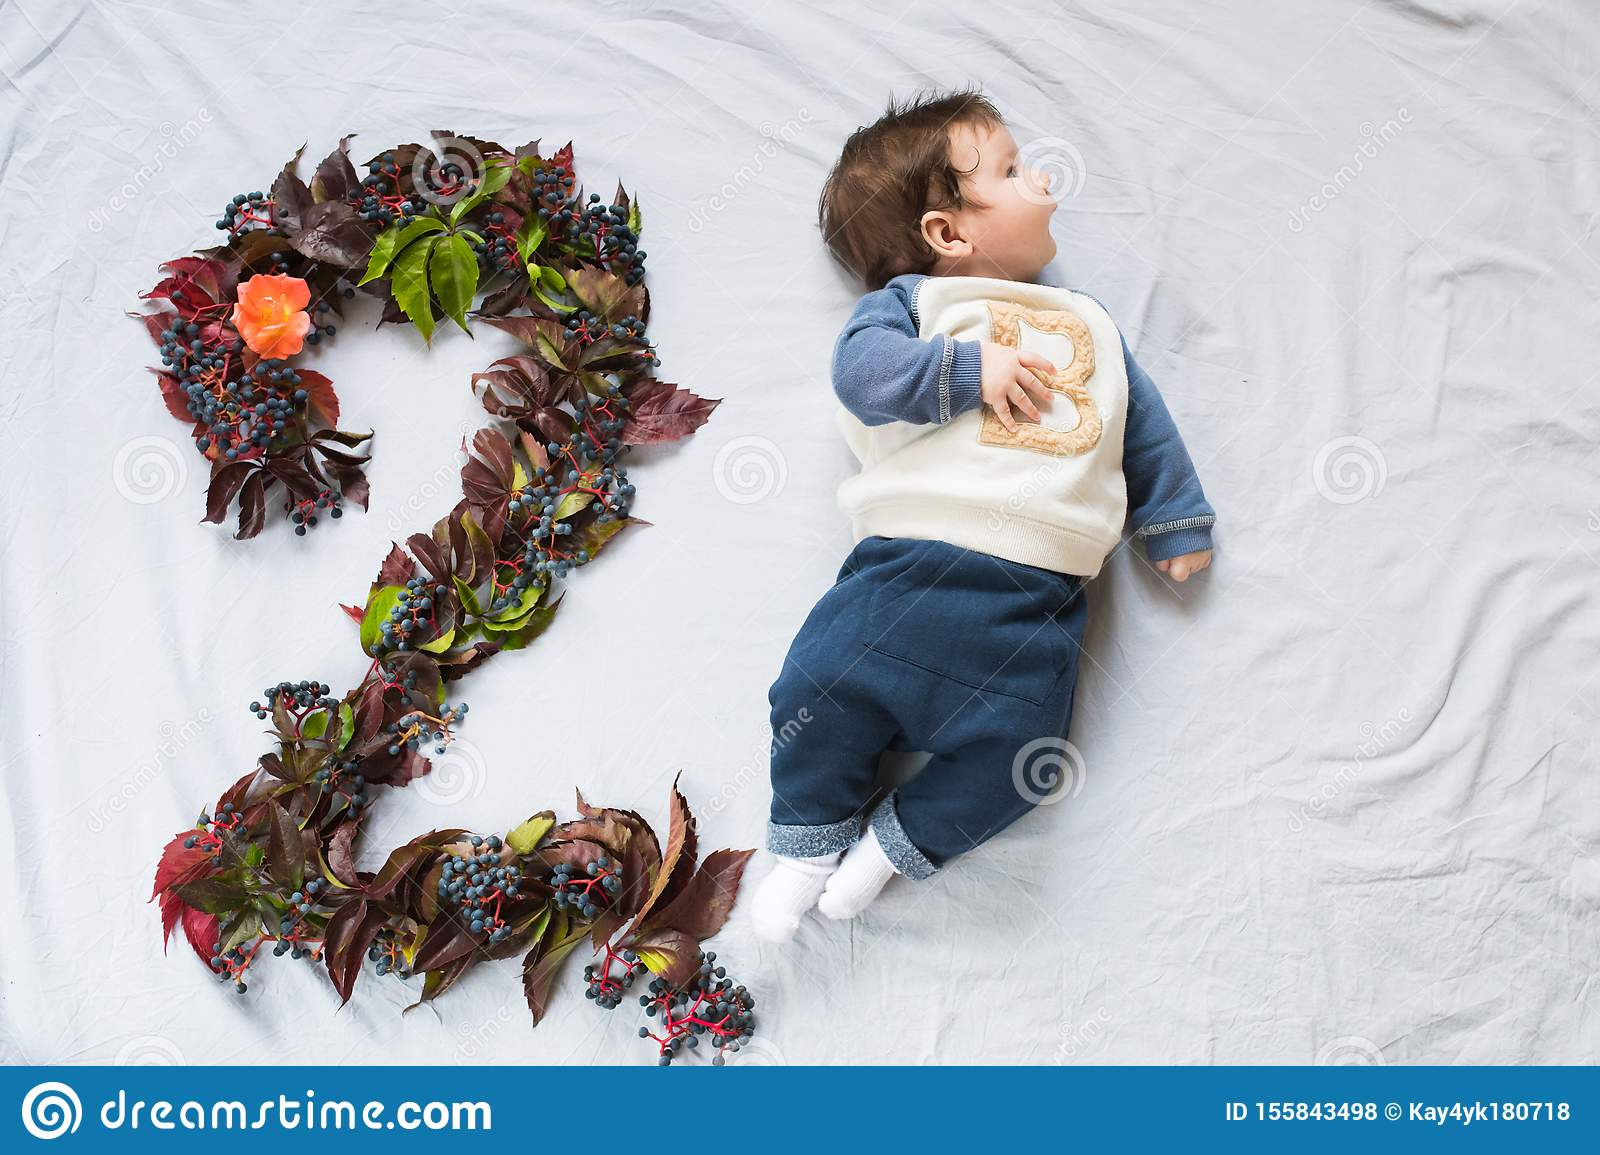 80 Happy 2 Months Old Baby Boy Photos Free Royalty Free Stock Photos From Dreamstime